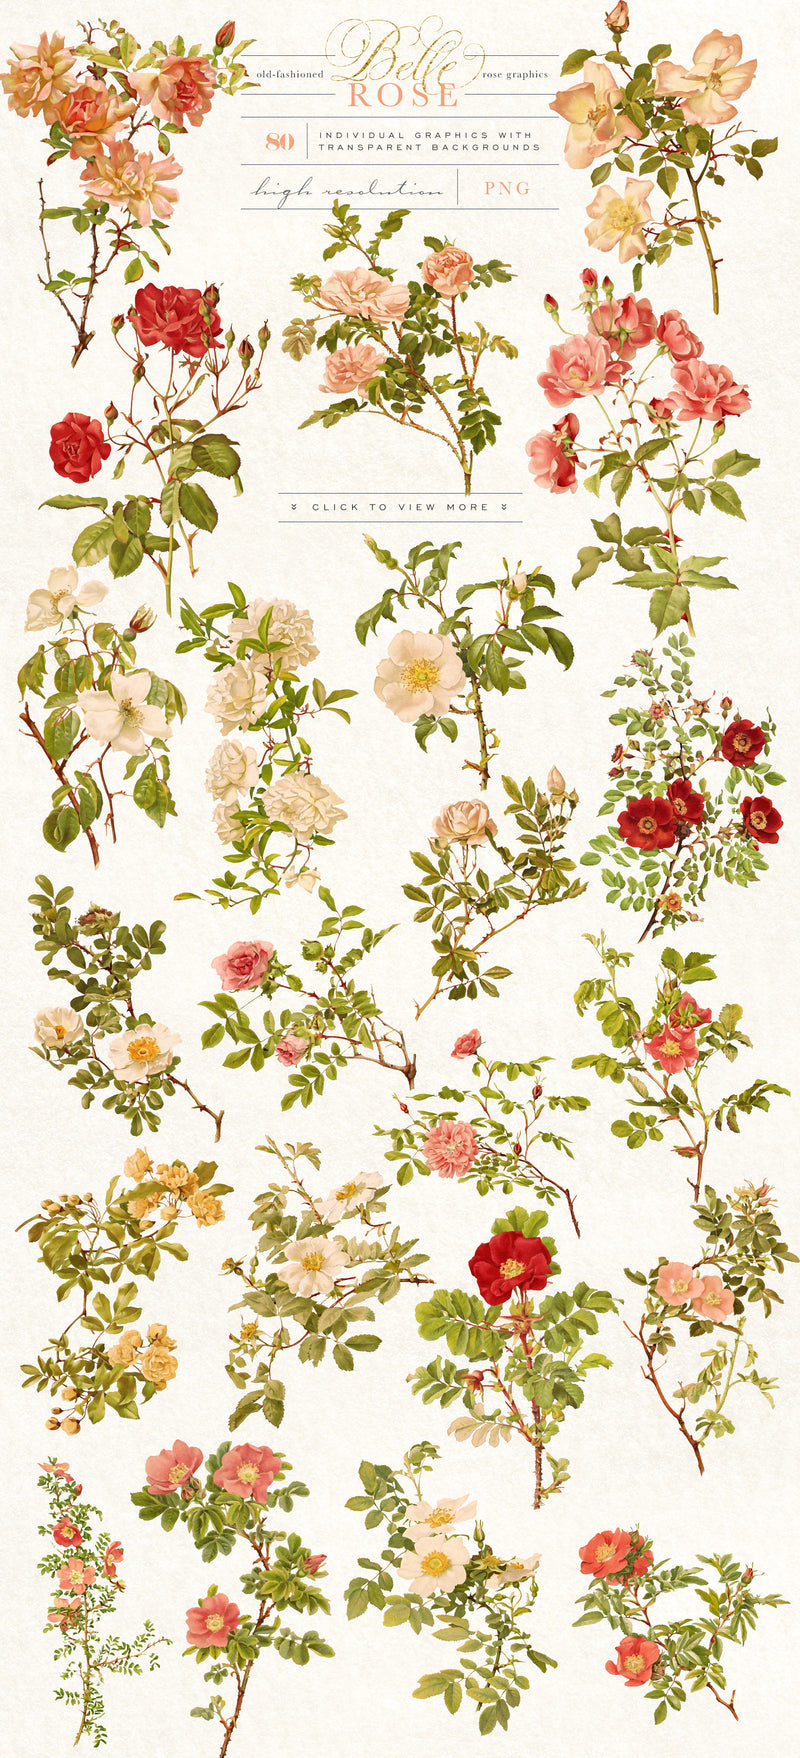 Belle Rose Antique Graphics Bundle